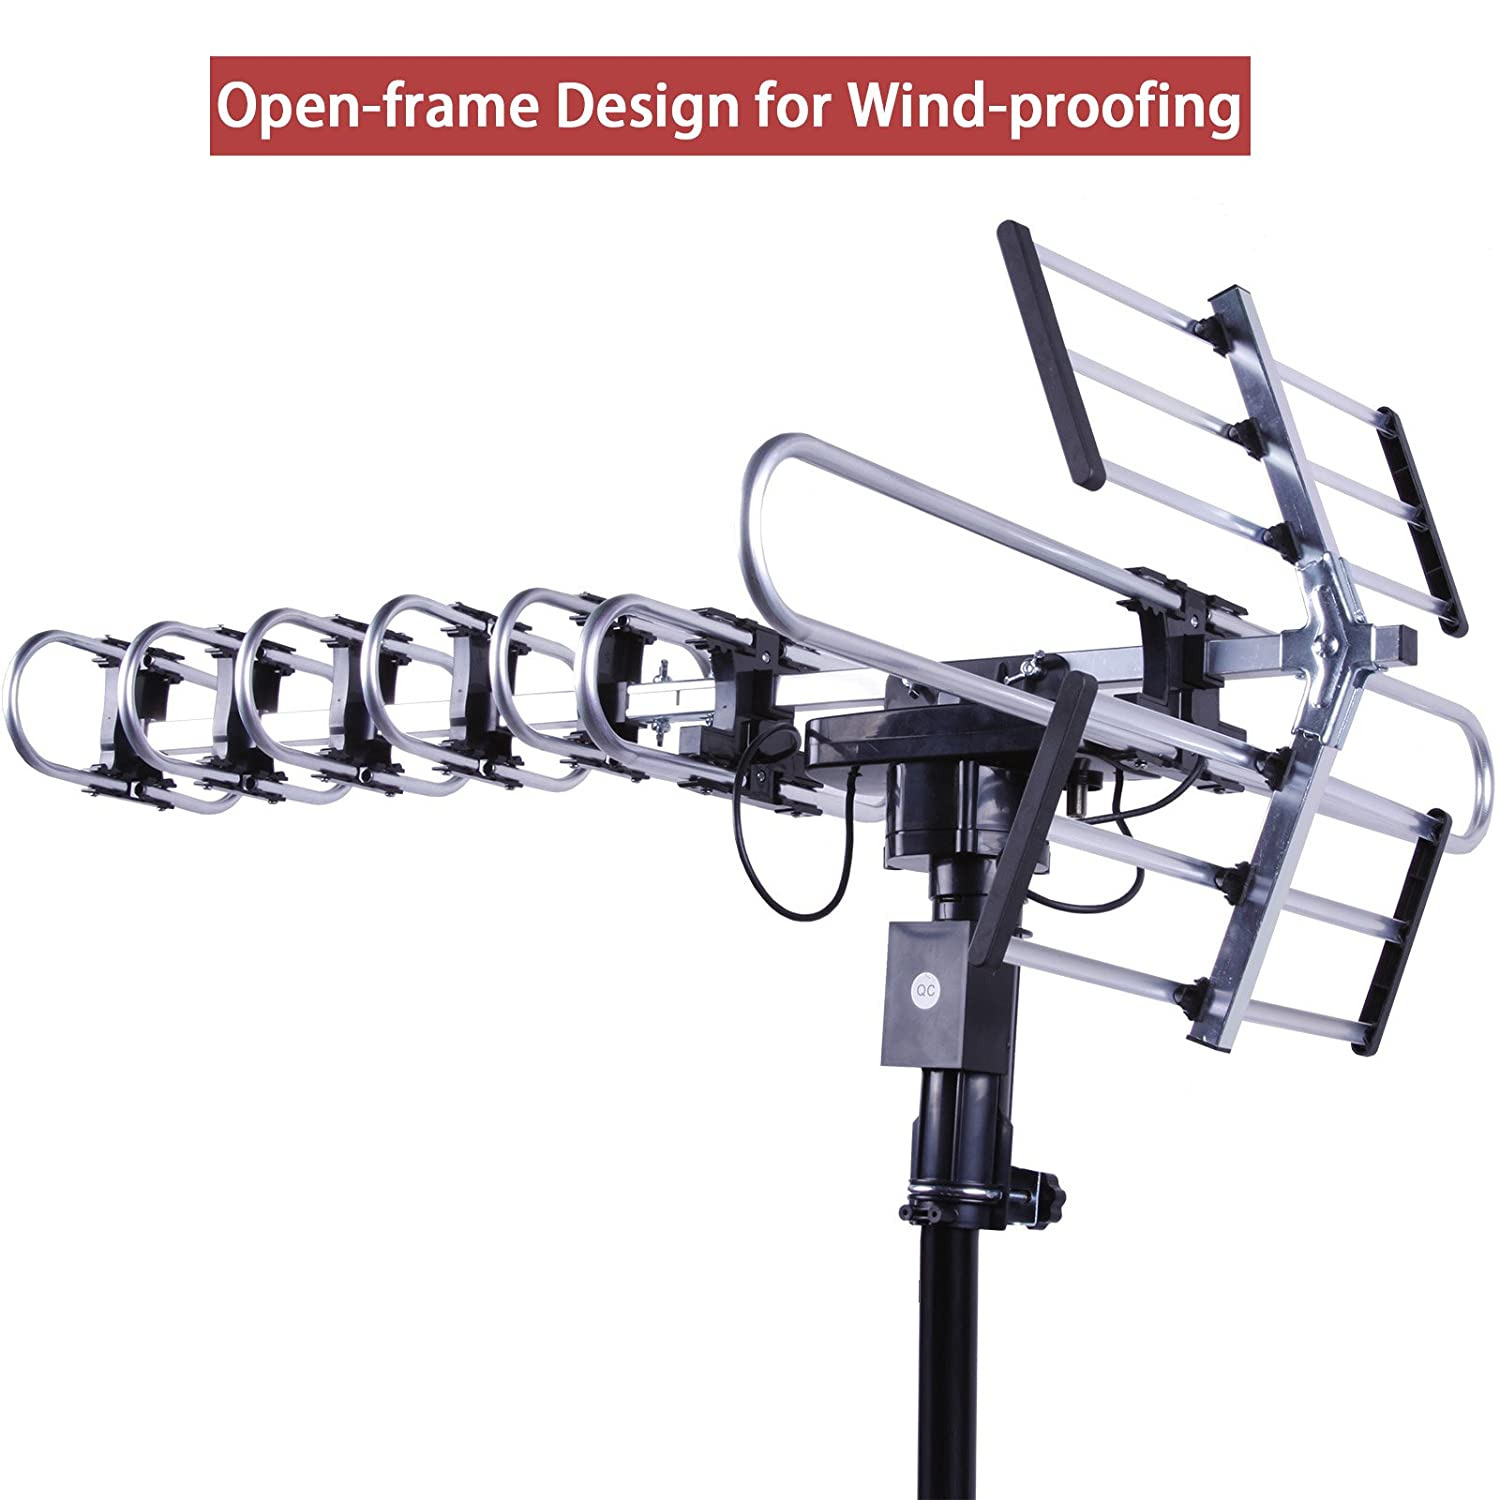 UHF//VHF//FM Radio with Infrared Remote Control Advanced Design Plus Installation Kit FiveStar Outdoor HD TV Antenna Strongest Up to 200 Miles Long Range with Motorized 360 Degree Rotation